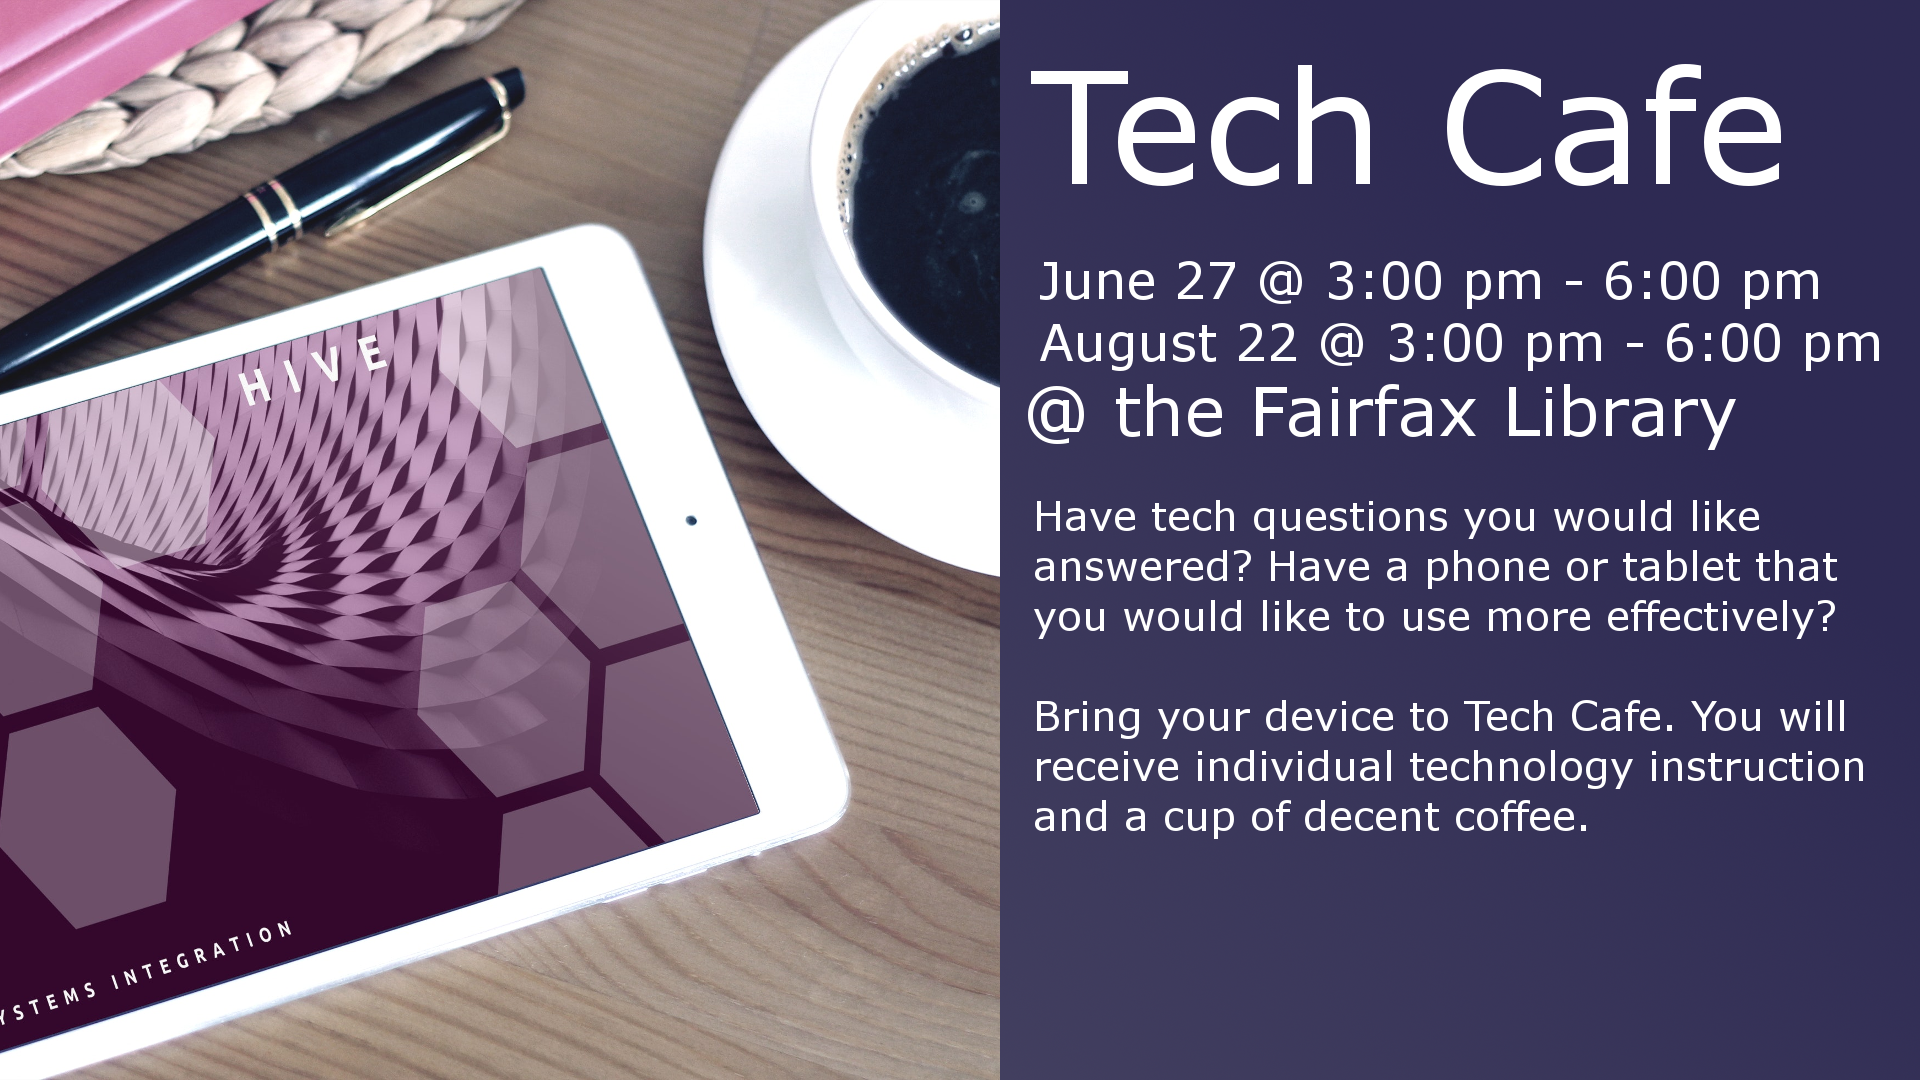 June 27 @ 3:00 - 6:00 pm August 22 @ 3:00 – 6:00 pm Have tech questions you would like answered? Have a phone or tablet that you would like to use more effectively? Then come to Tech Cafe.